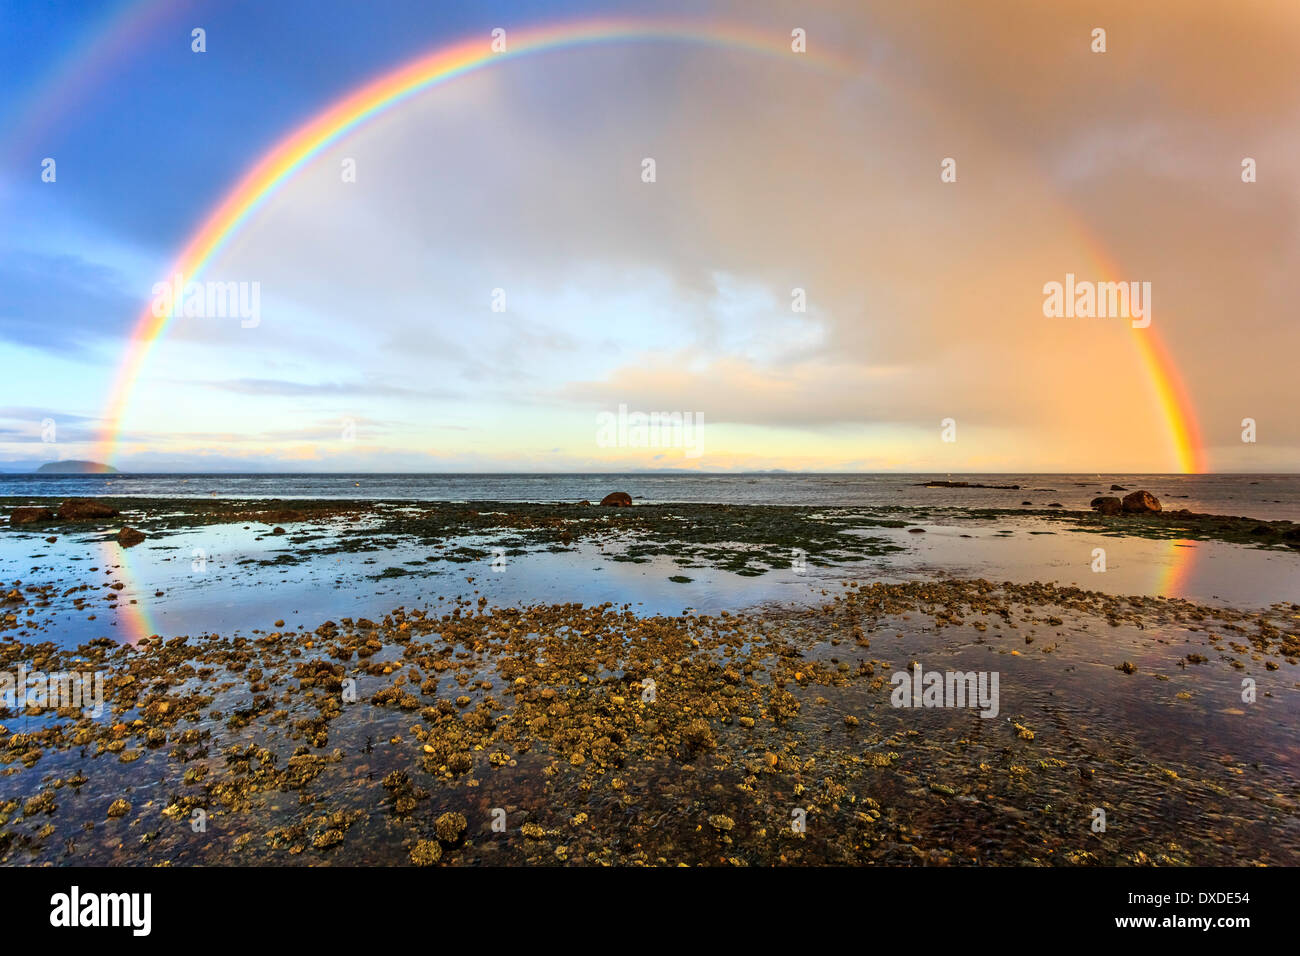 A double rainbow reflects in the pools of water on a west coast beach. - Stock Image